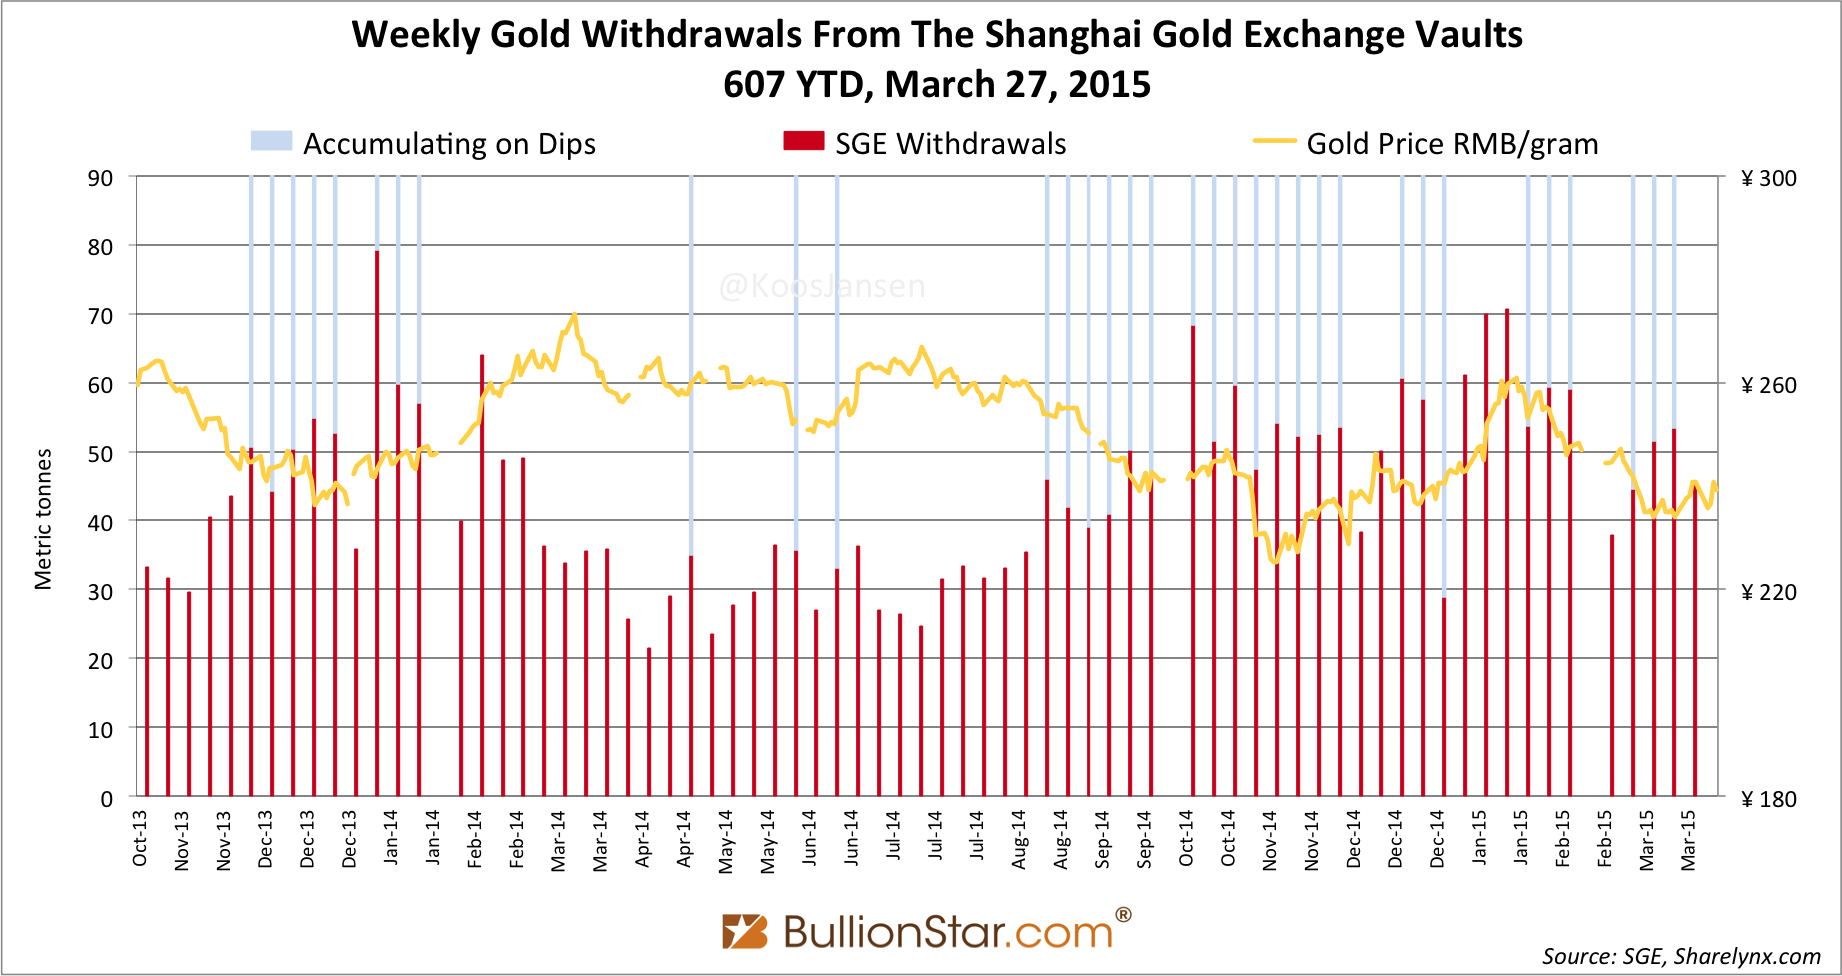 Shanghai Gold Exchange SGE withdrawals delivery only 2014 - 2015 week 12 x